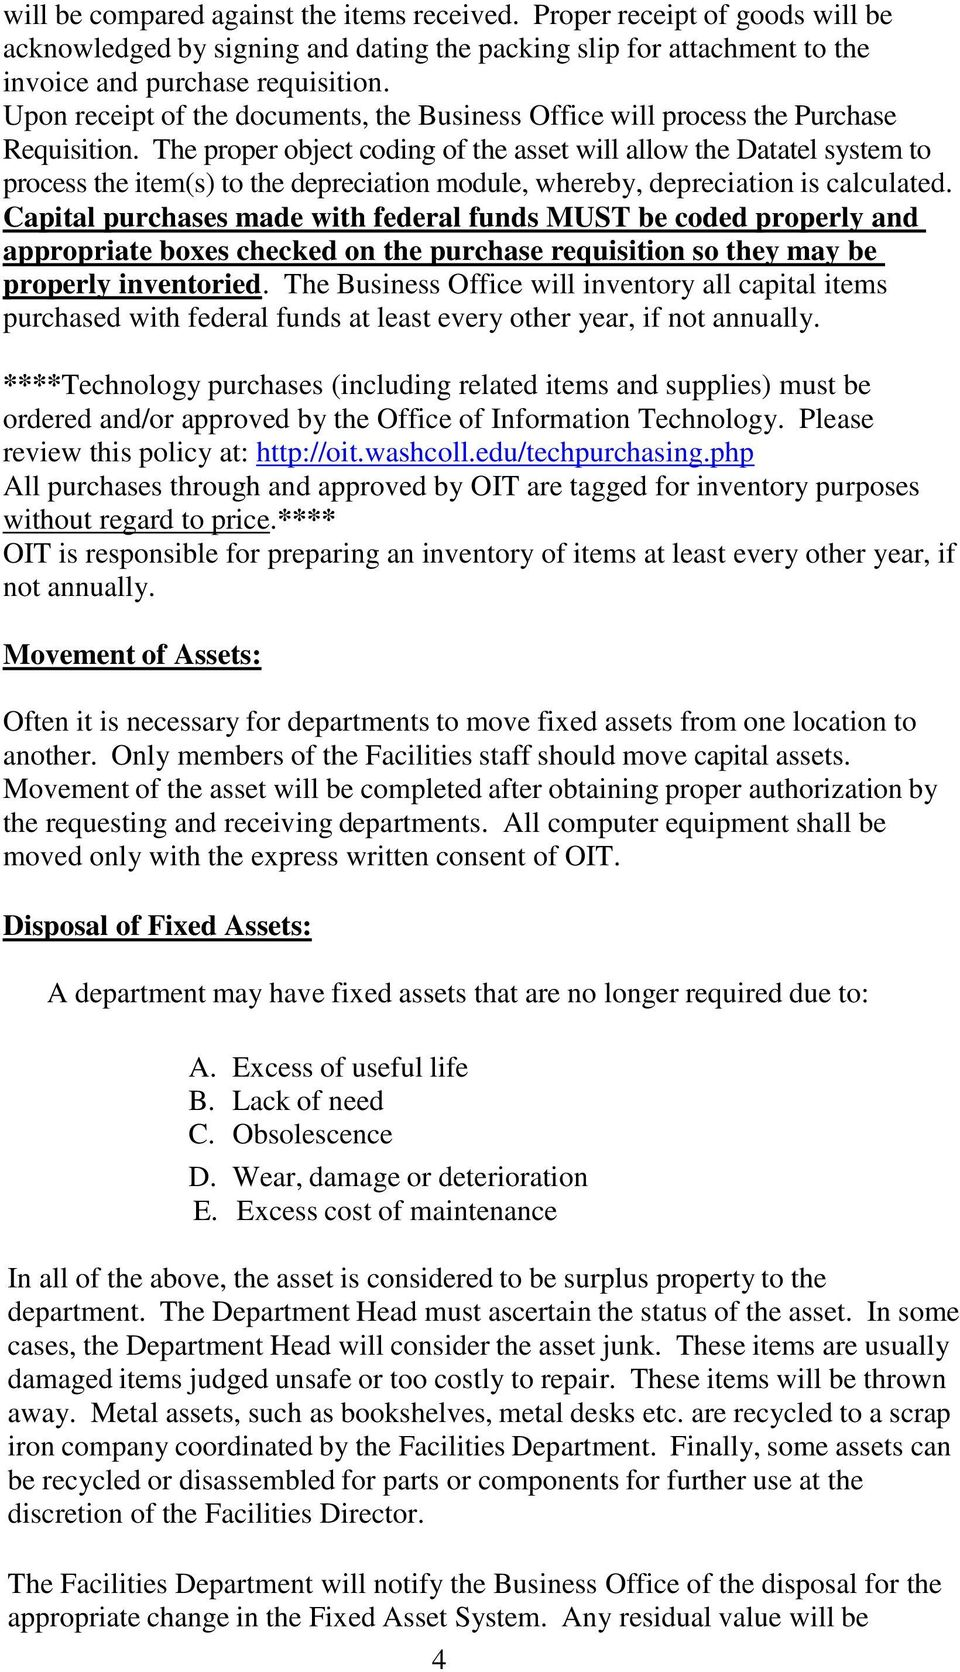 The proper object coding of the asset will allow the Datatel system to process the item(s) to the depreciation module, whereby, depreciation is calculated.